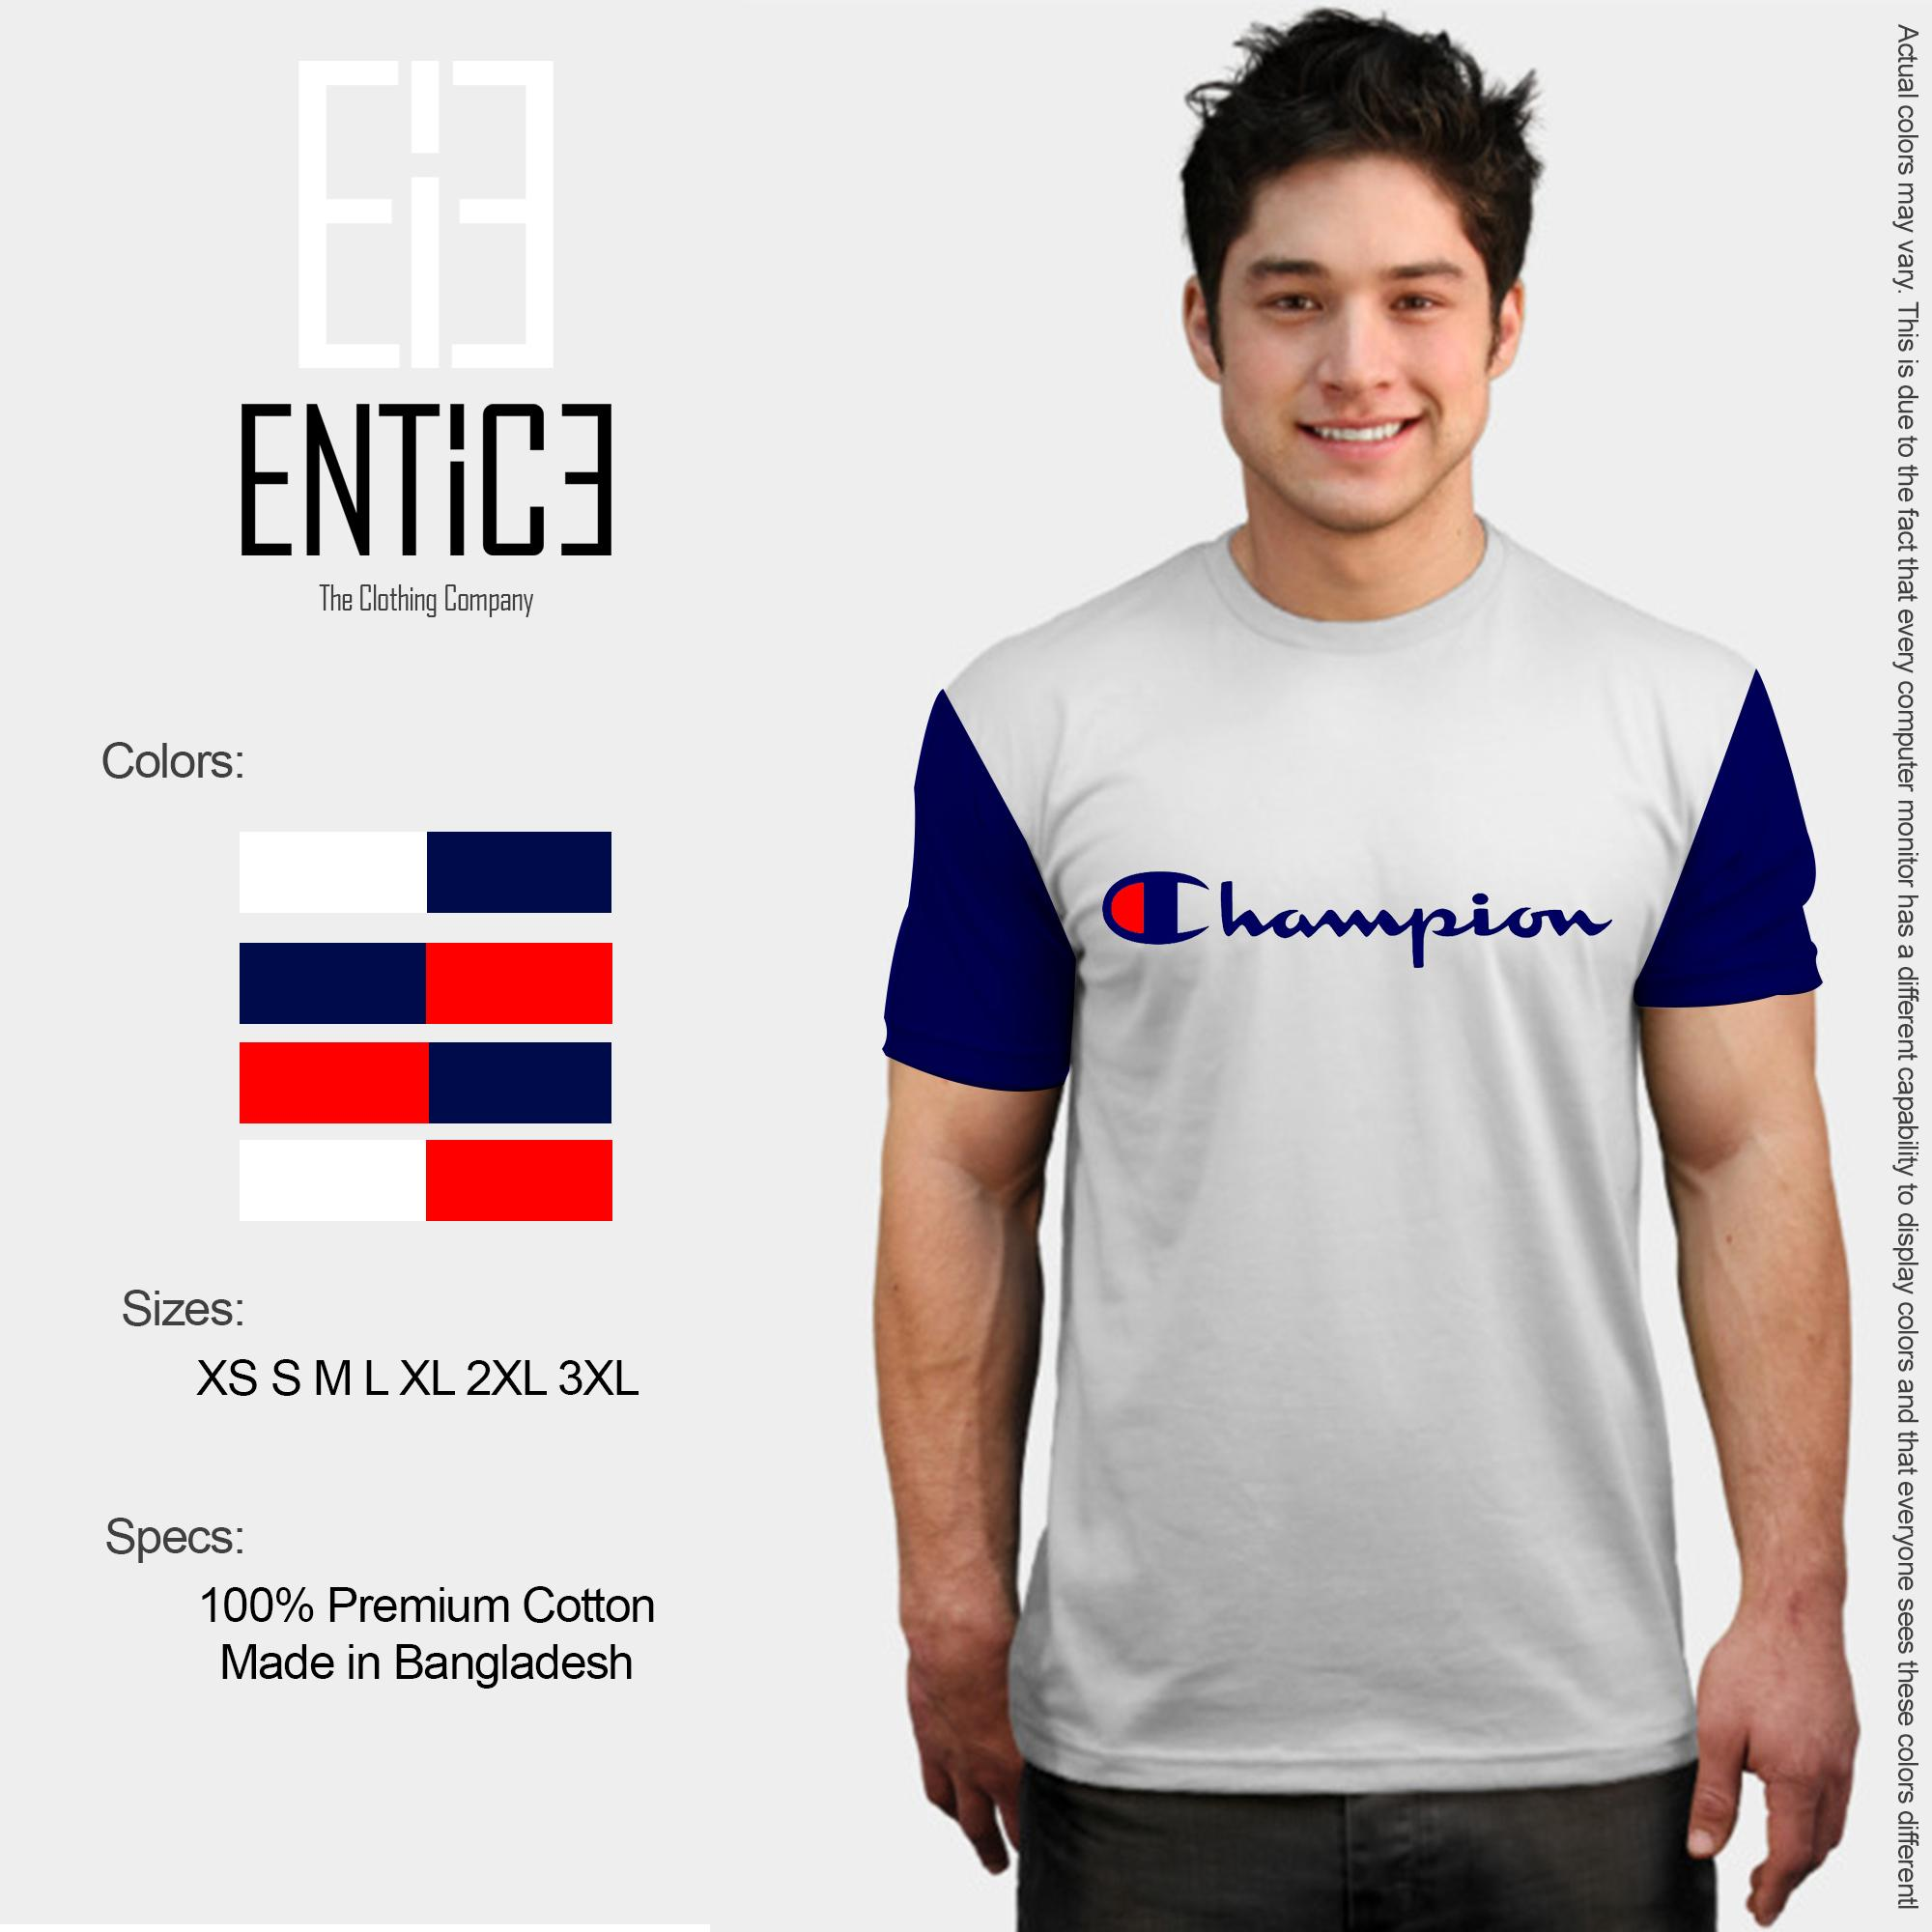 High Quality Blank T Shirts For Printing Philippines Joe Maloy